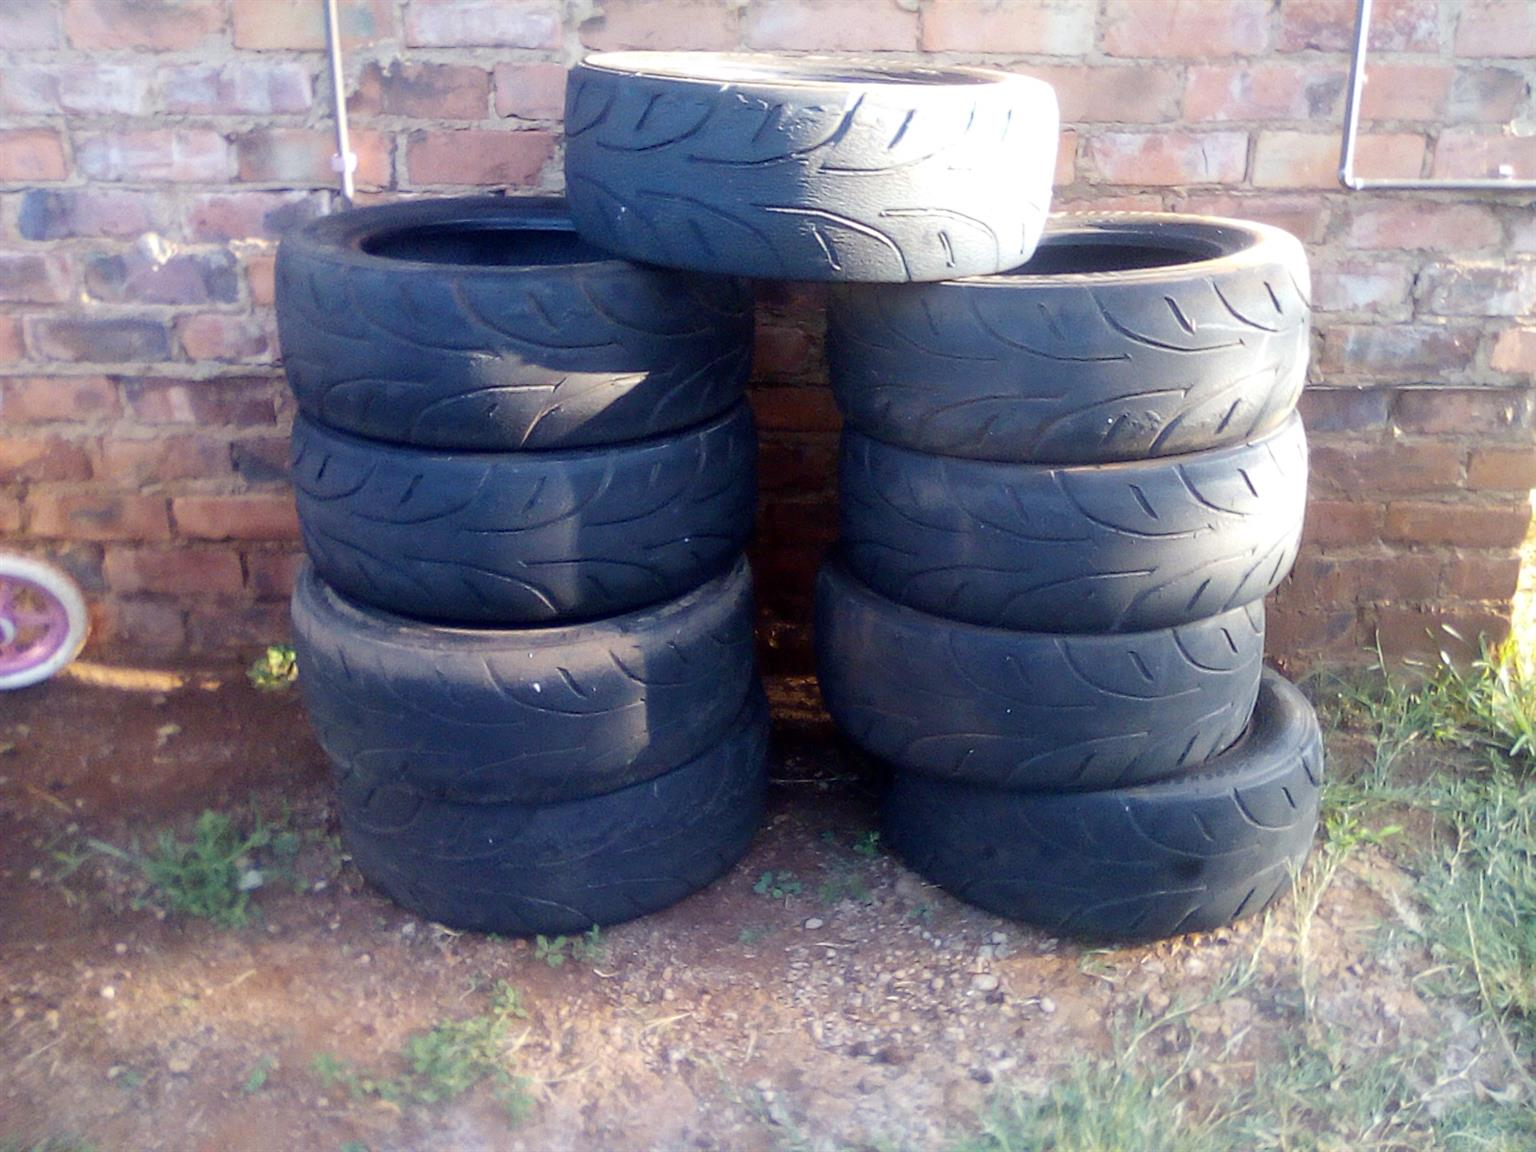 195/55/15 Bridgestone Potenza Semi Slicks